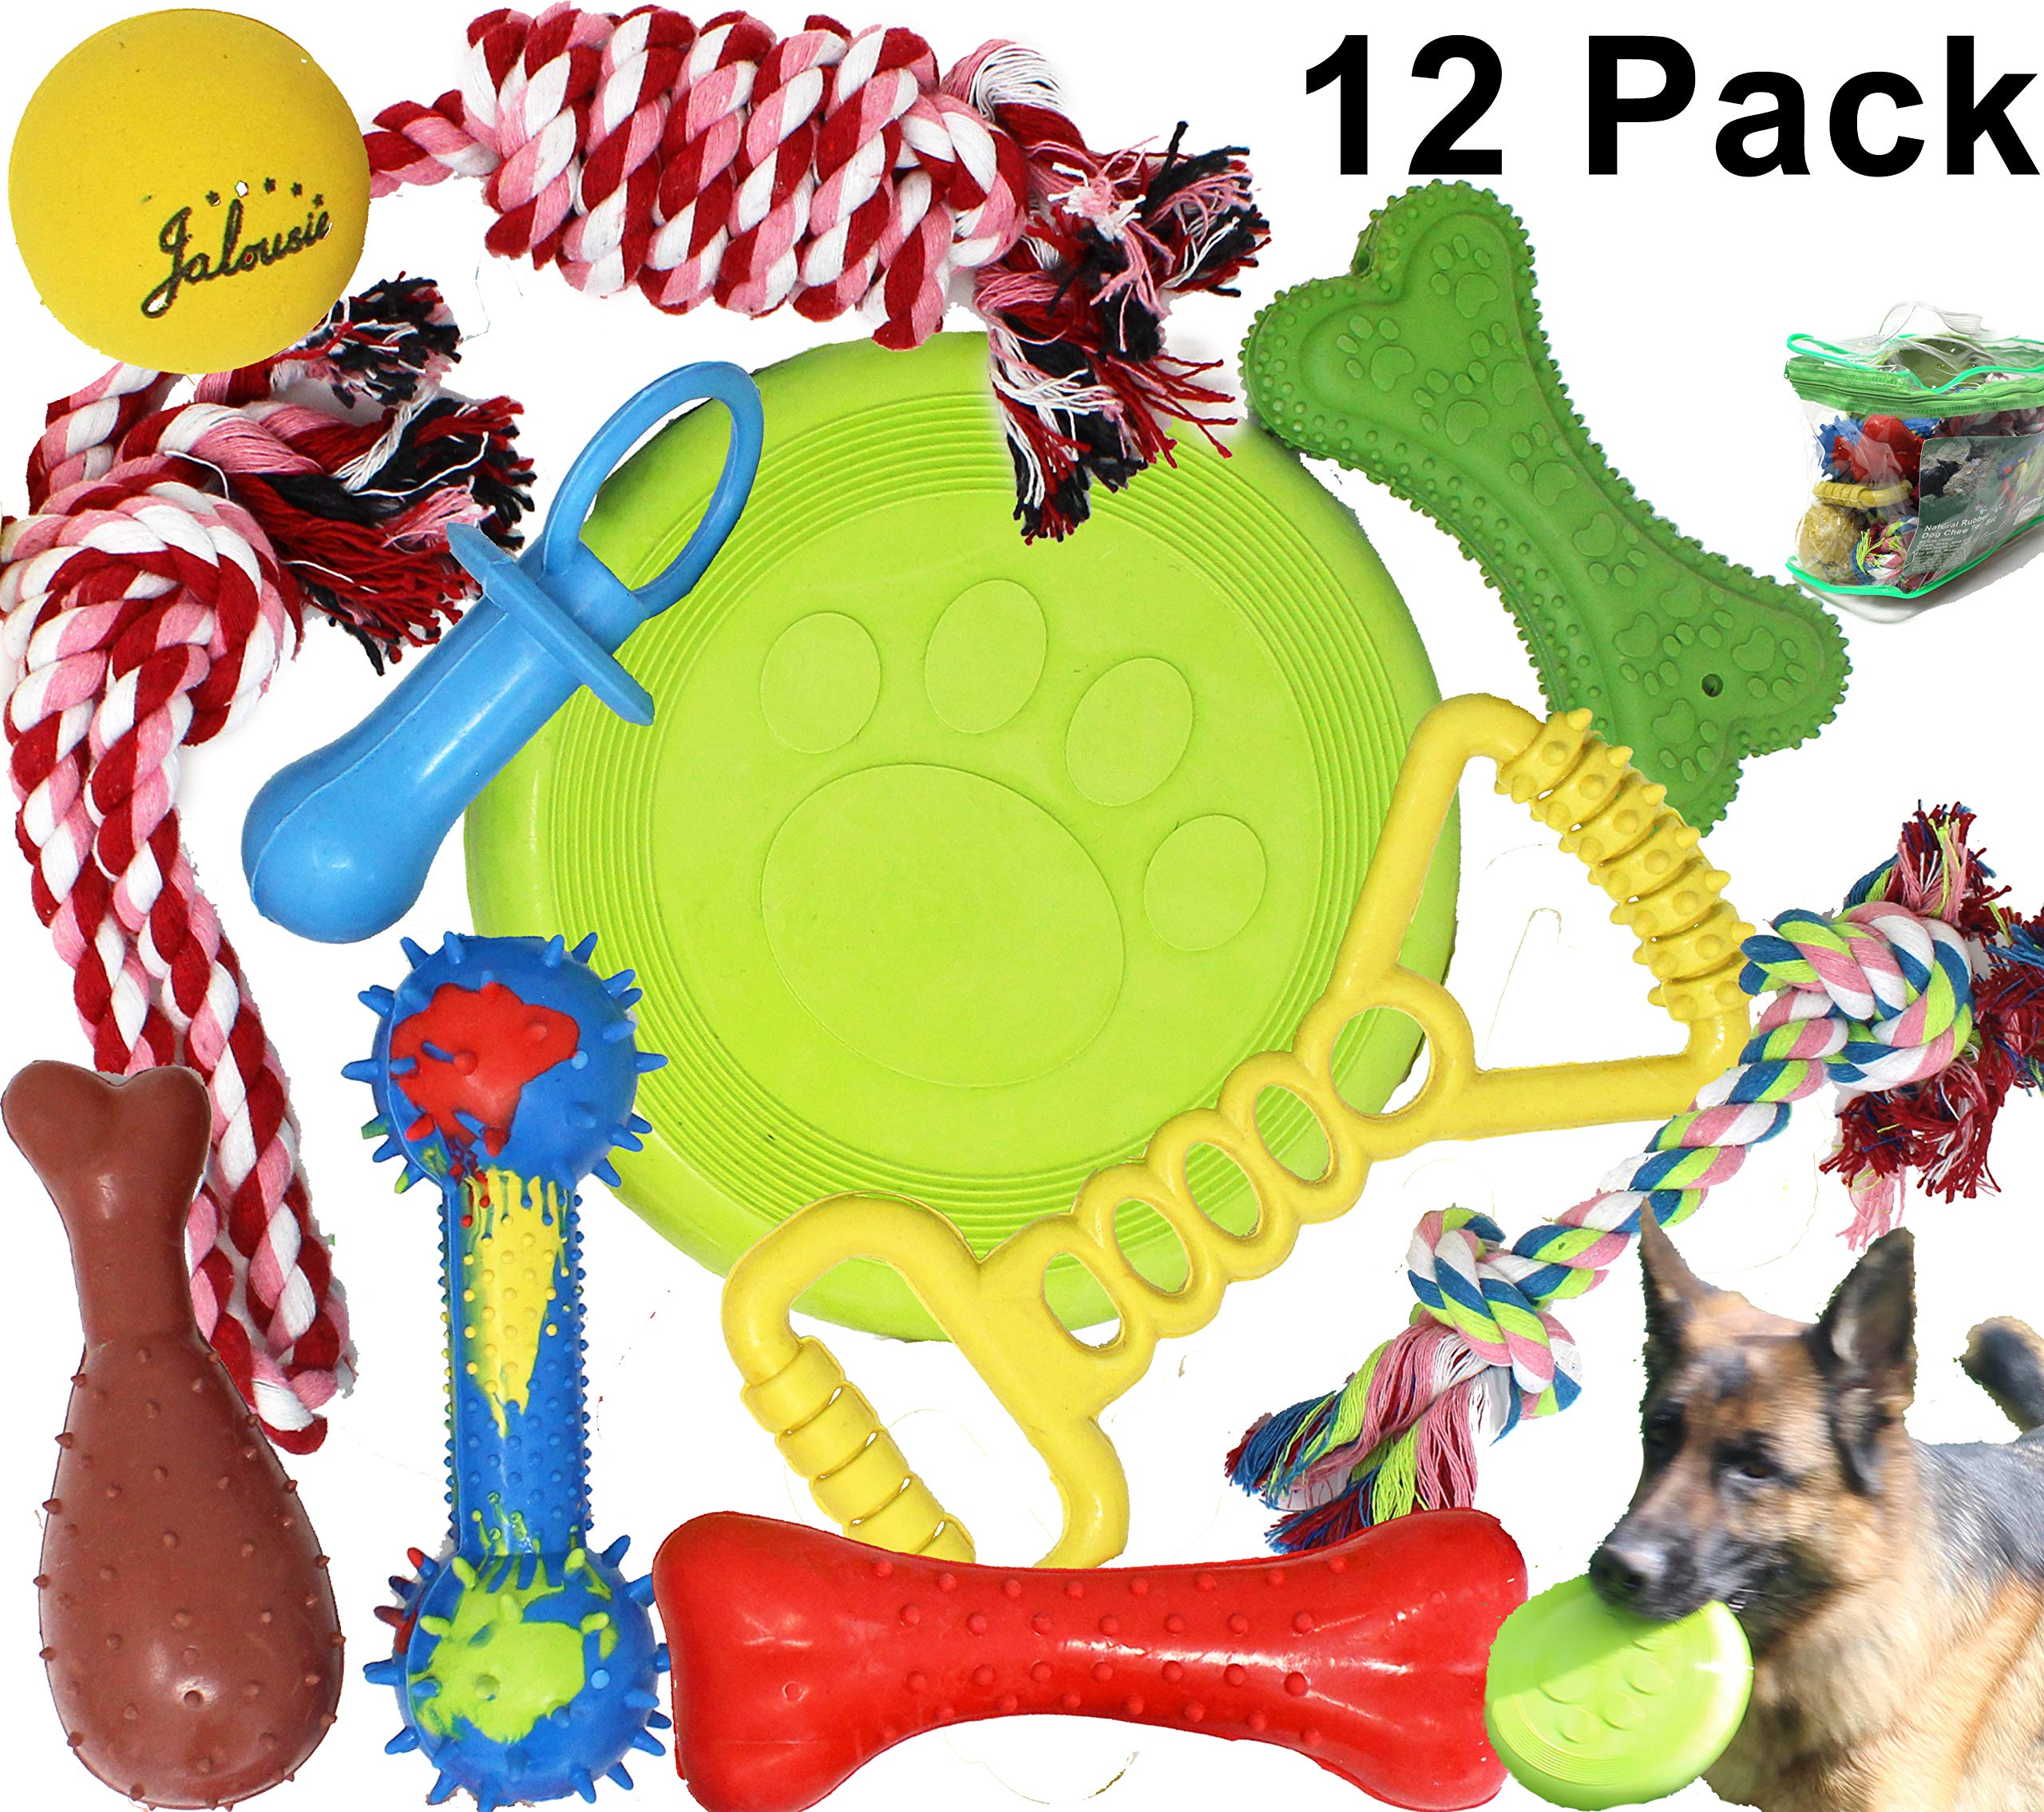 Jalousie 12 Pack Dog Chew Toy Natural Rubber chew Toy for Interactive Play Toy Ball Rope Rubber Value Set for Small to Medium Breed Dog mutt Puppy